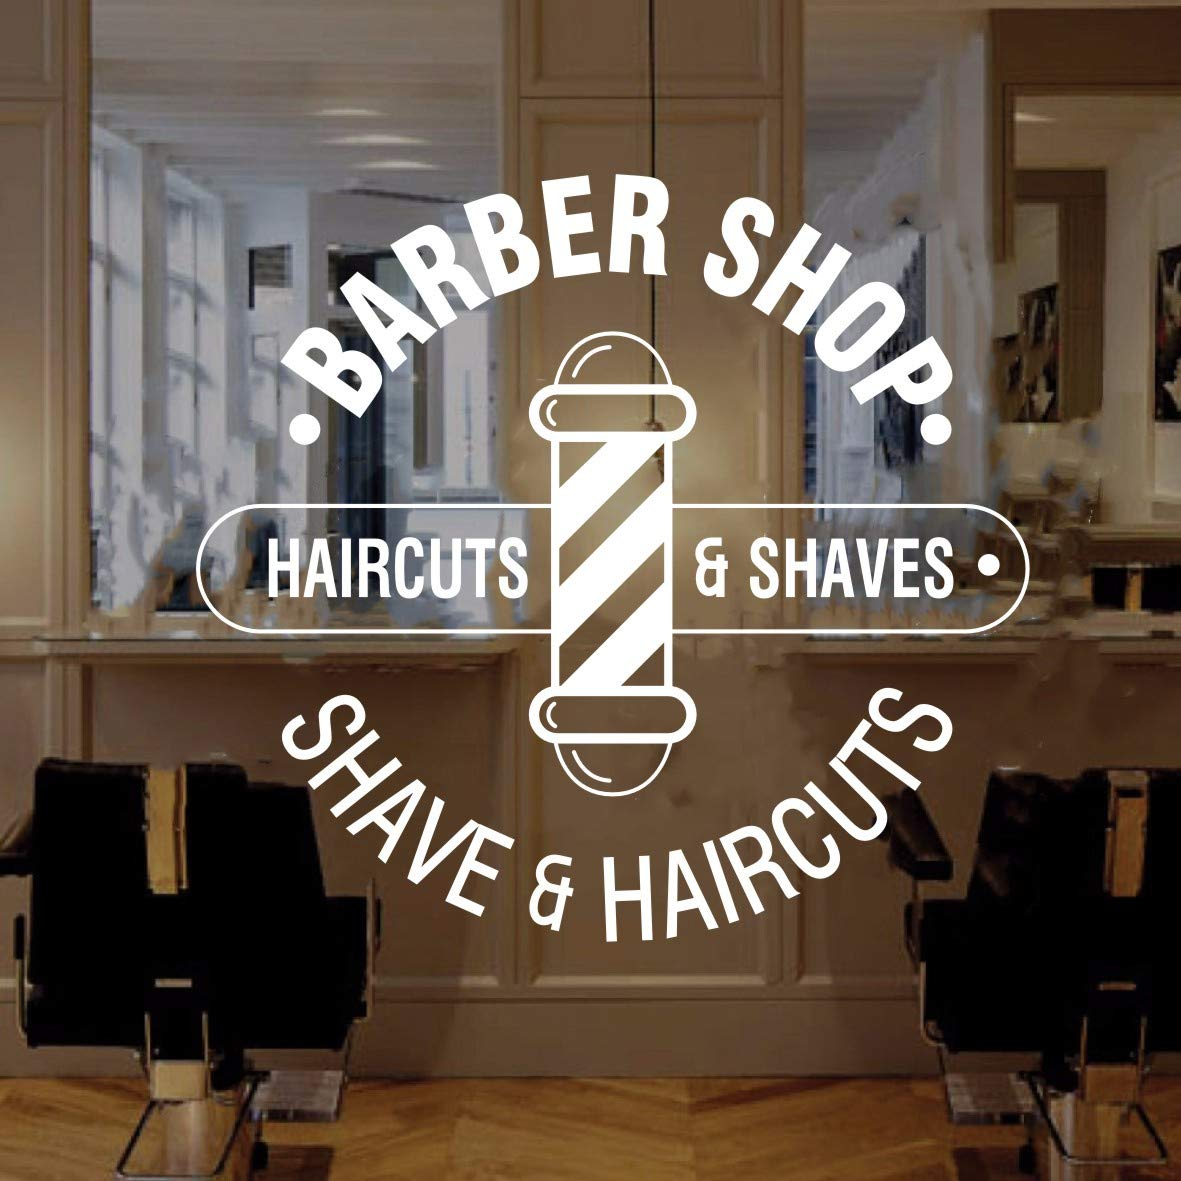 Wall Decal Barber Shop Window Sticker Barber Shop Logo Shave And Haircut Beauty Salon Wall Window Decor Sticker Art Vinyl Murals Ly40 White 22x22inch 57x57cm Home Improvement